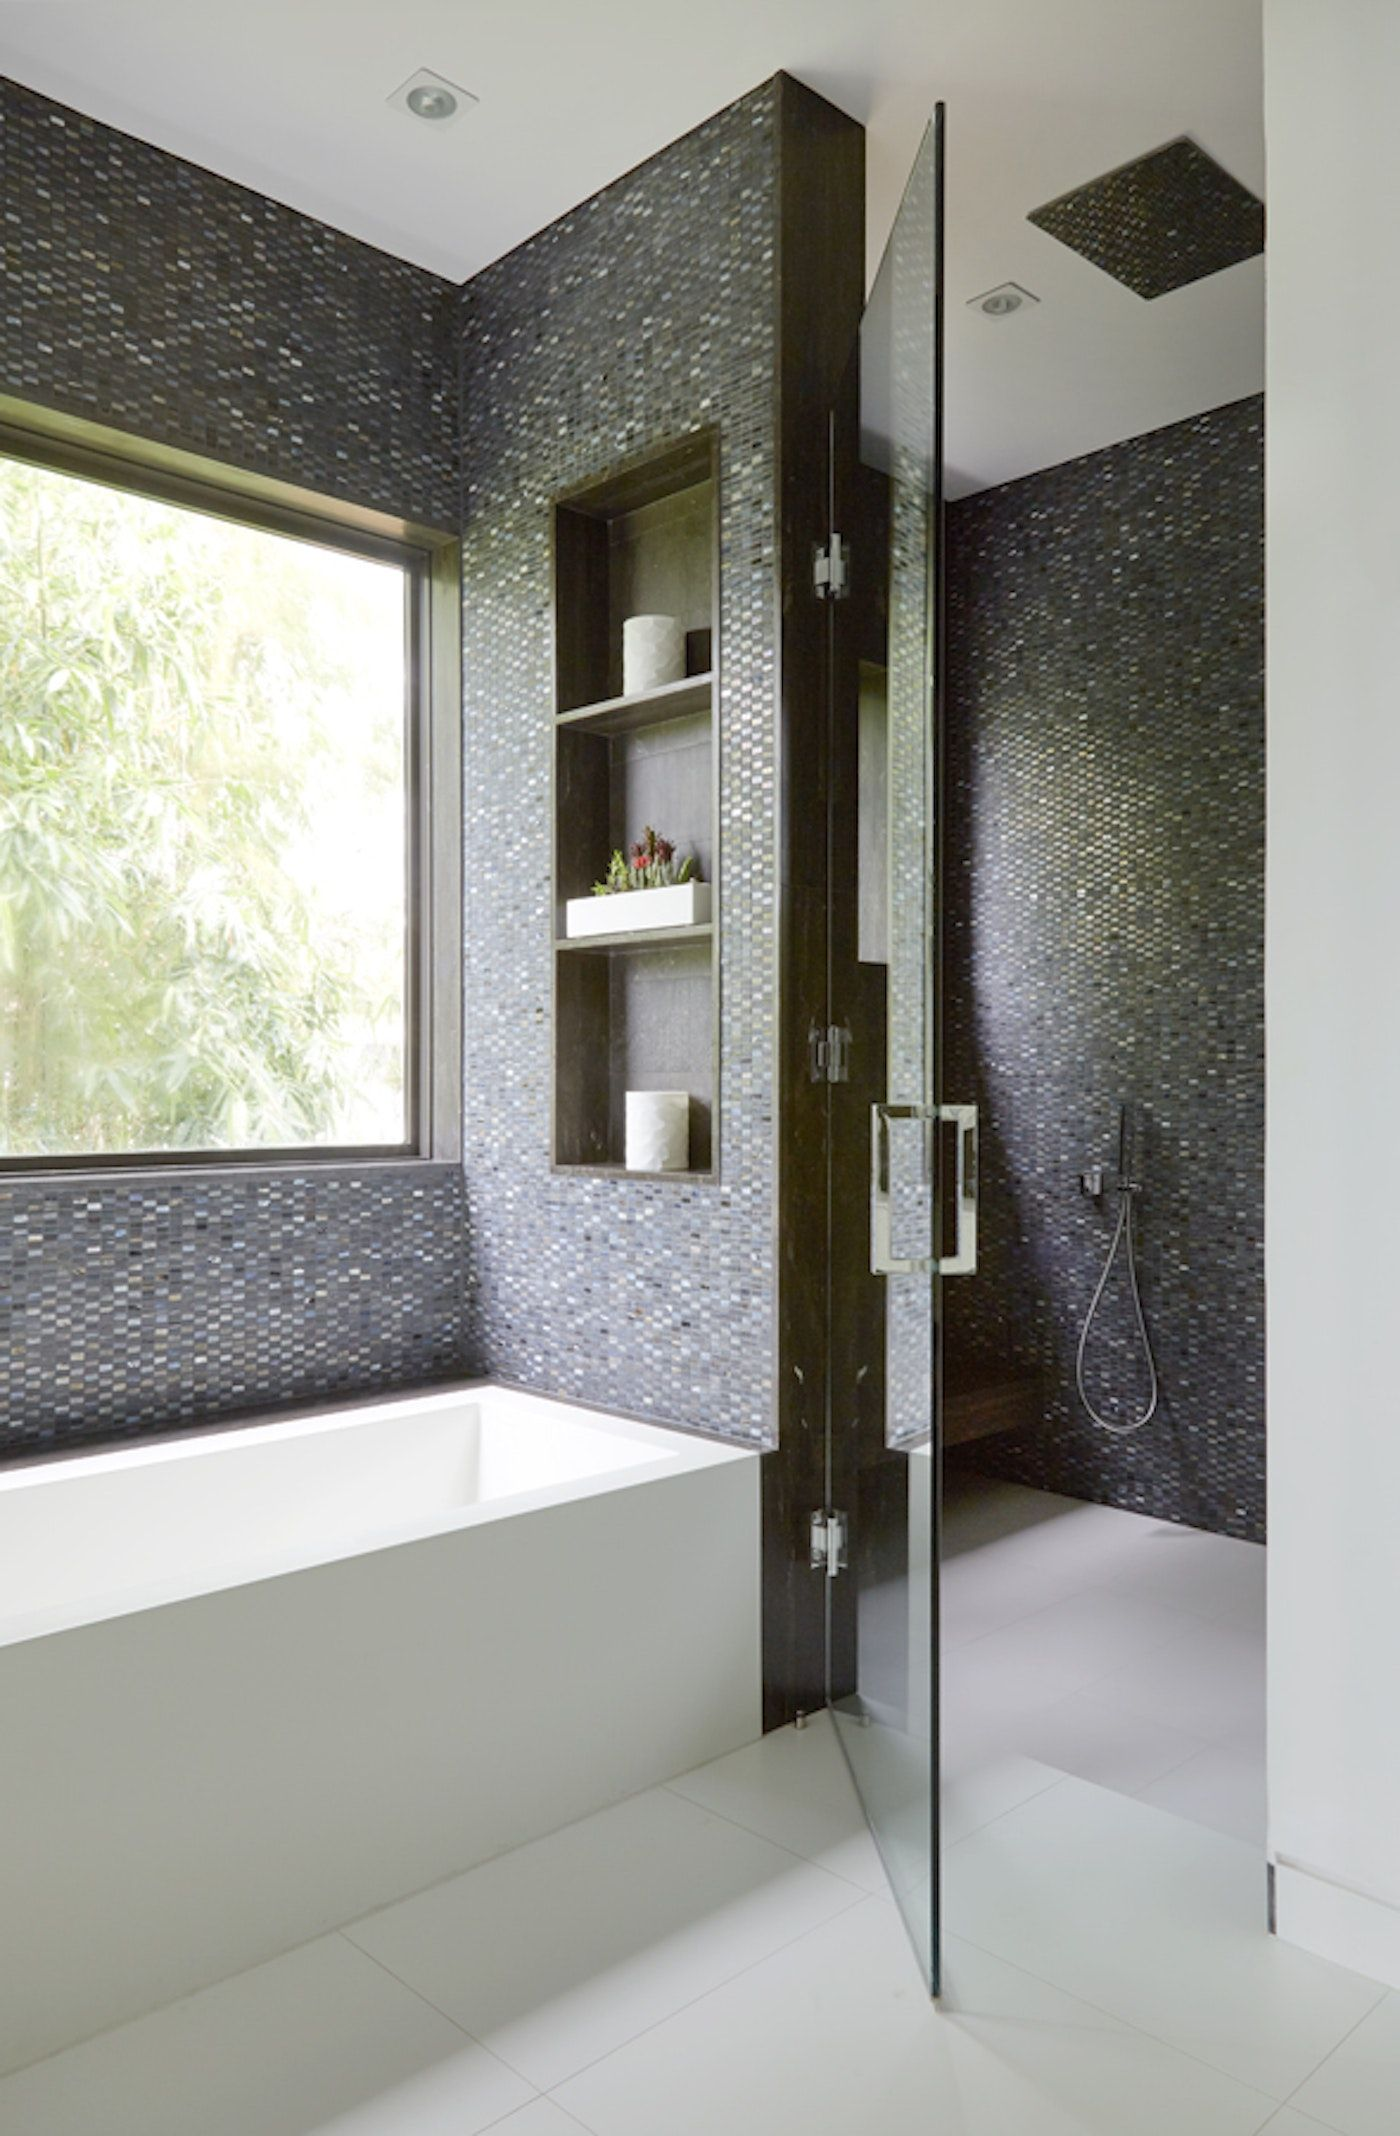 Dark gray mosaic tiles from ann sacks to create warmth in this